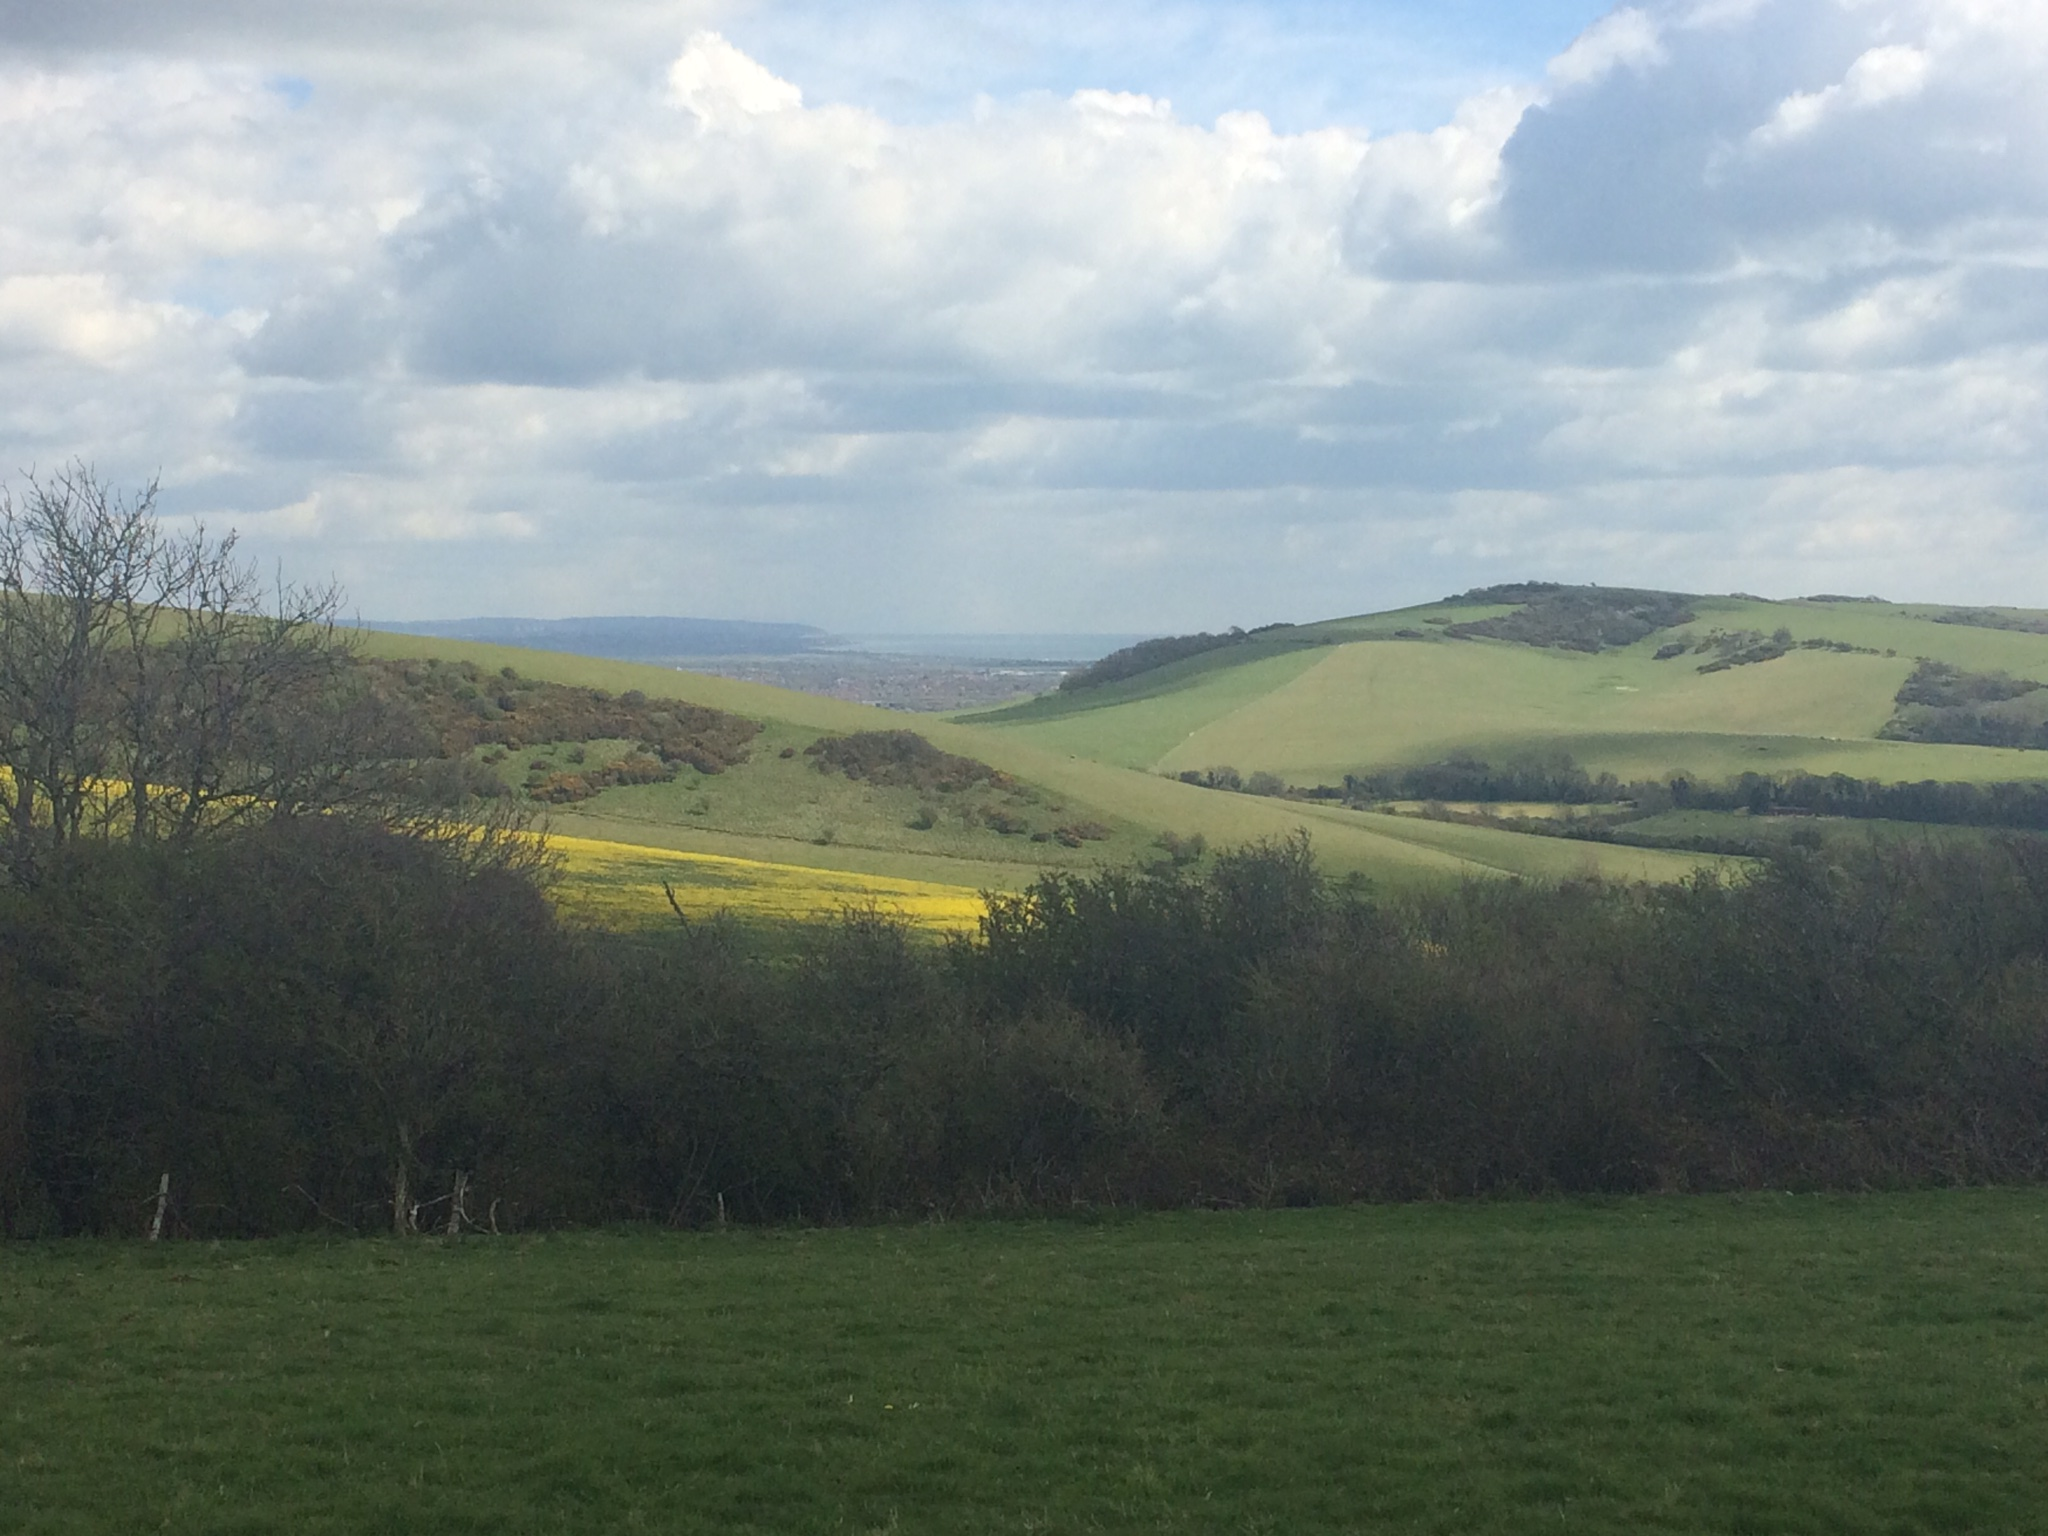 Downland Scenery in April